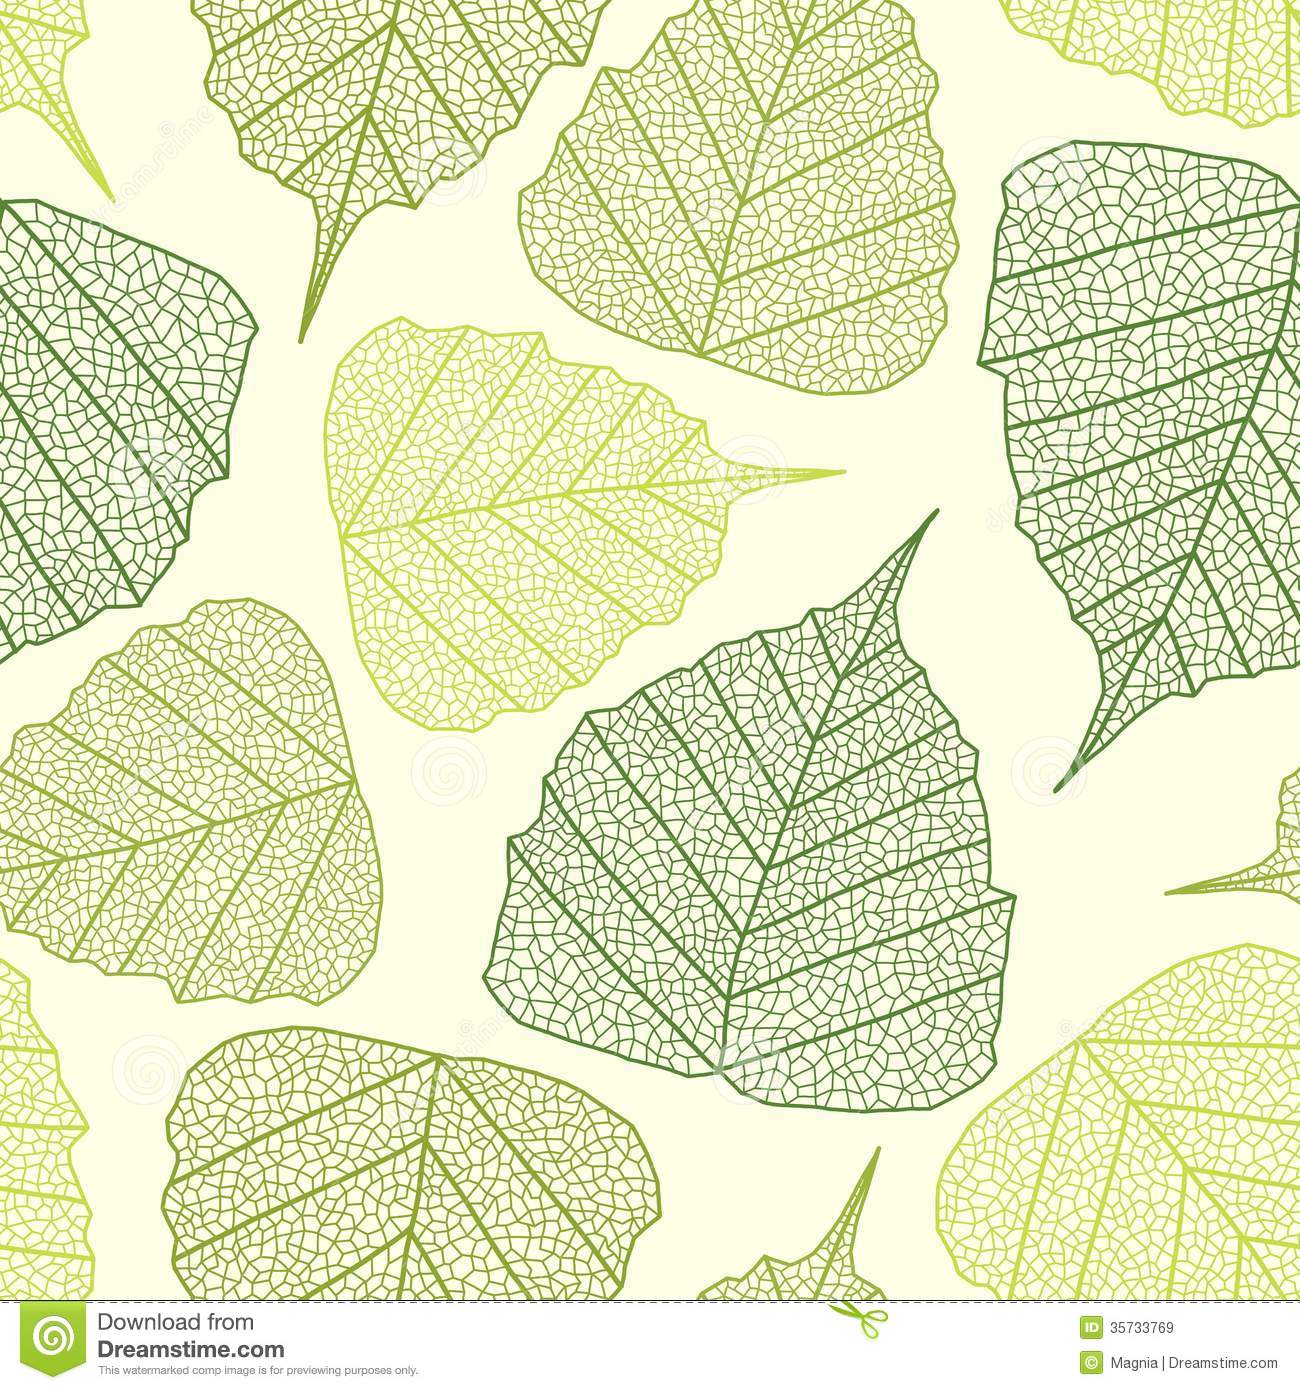 Seamless pattern with textured leaves. Vector illustration.